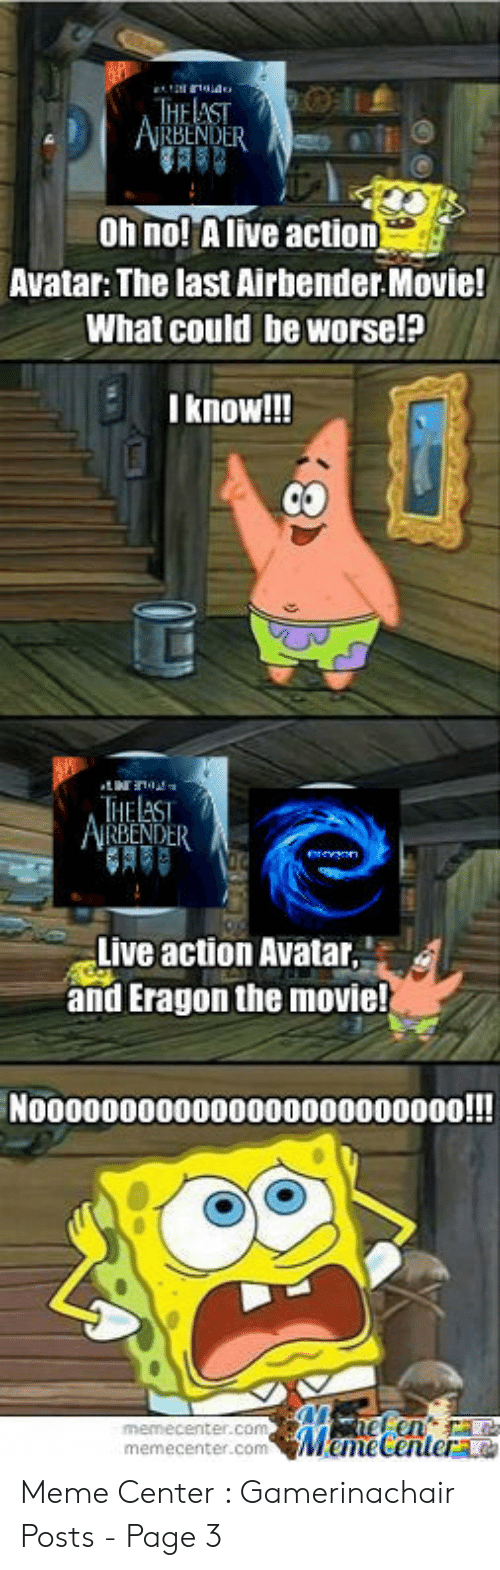 25 Best Memes About Avatar The Last Airbender Movie Avatar The Last Airbender Movie Memes